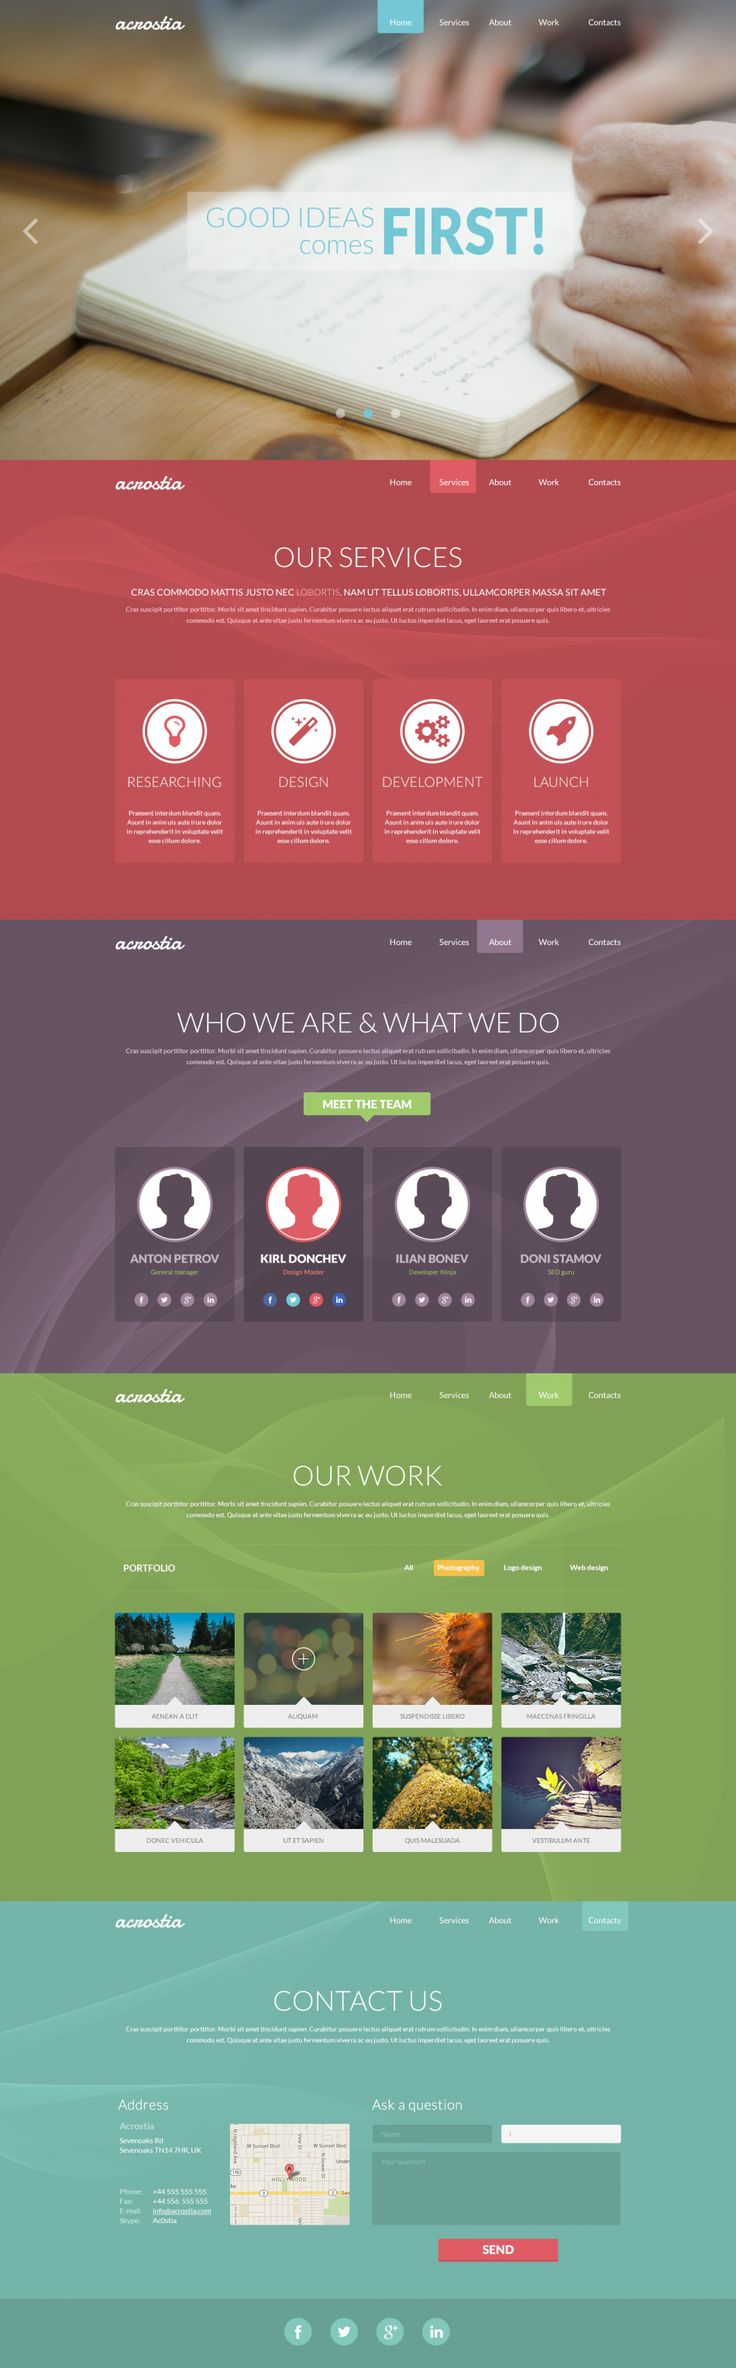 Acrostia - Free One Page Template